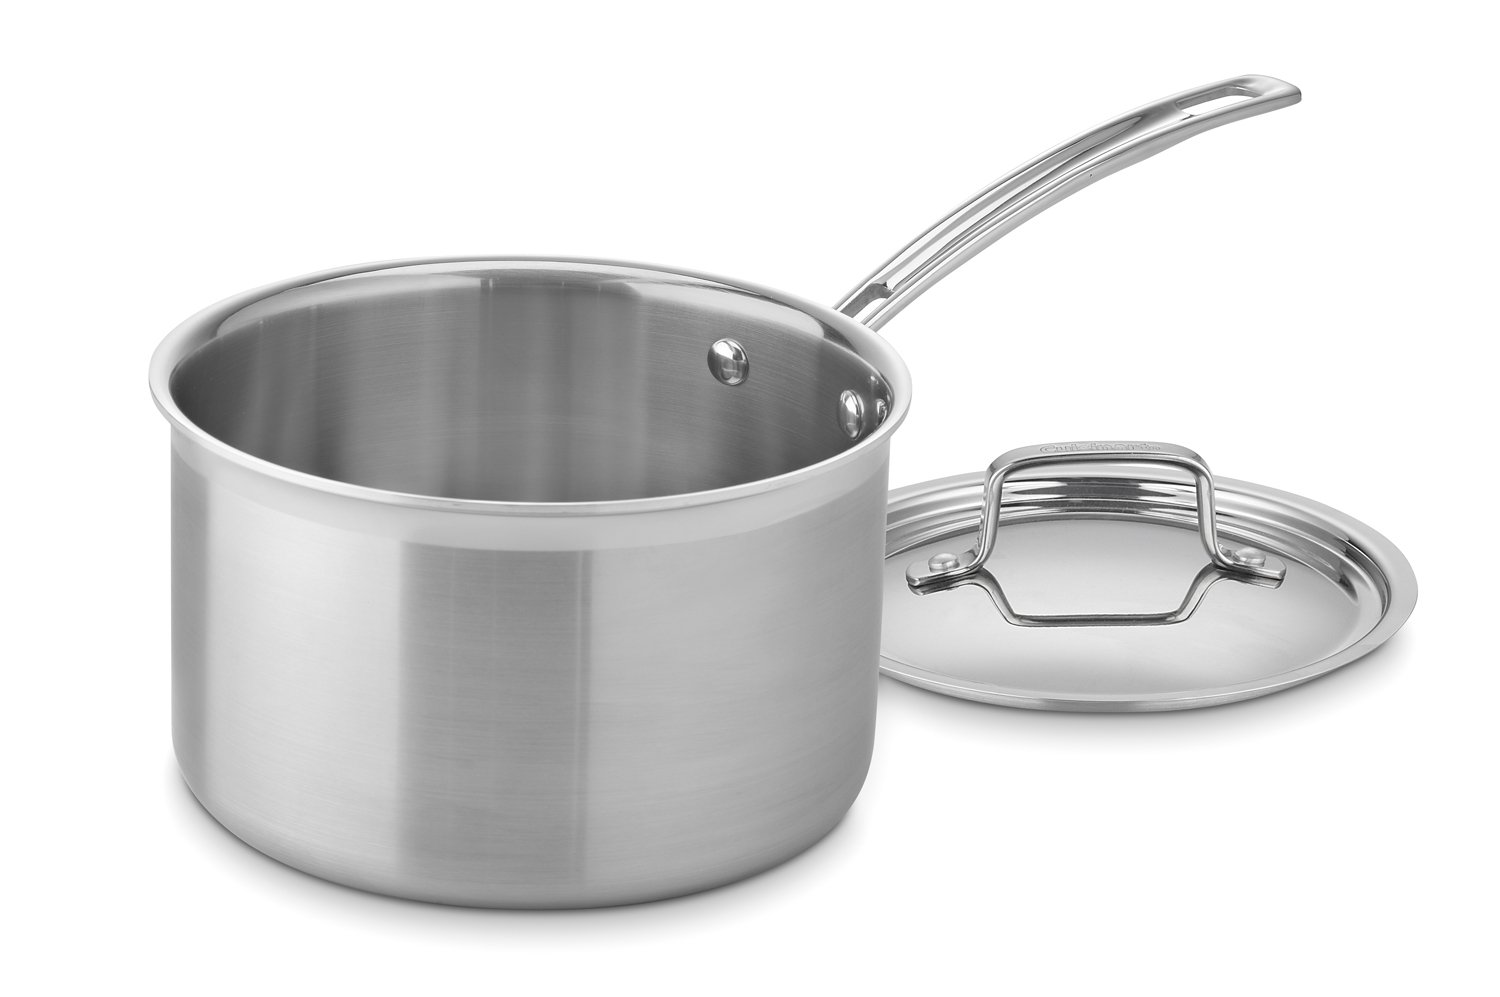 Cuisinart MCP194-20N MultiClad Pro Stainless Steel 4-Quart Saucepan with Cover by Cuisinart